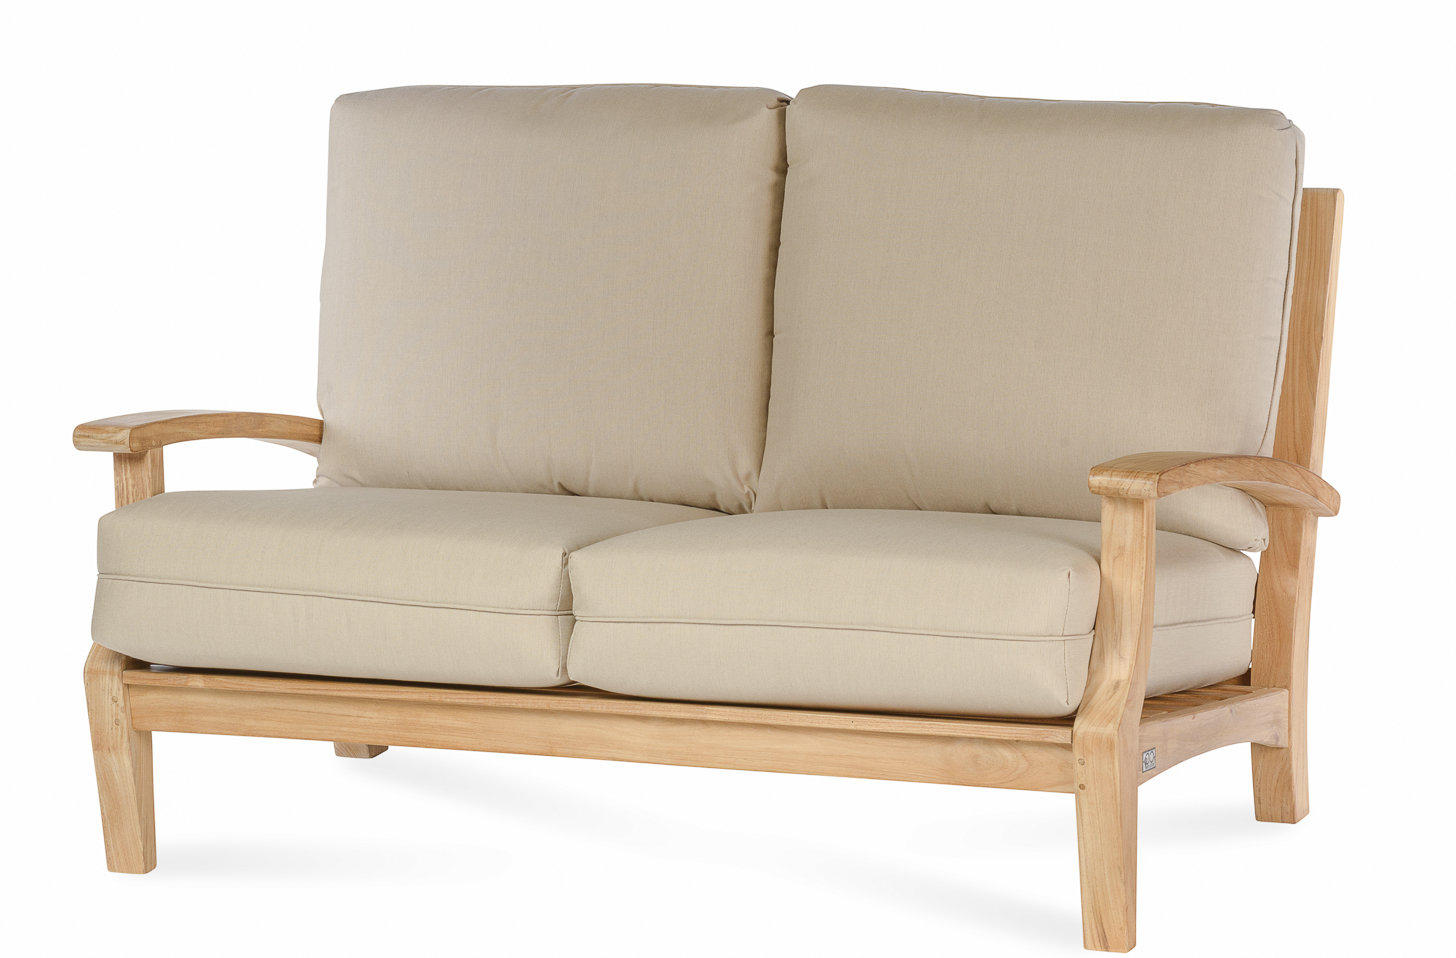 Favorite Boyle Teak Loveseat With Sunbrella Cushion With Mansfield Teak Loveseats With Cushion (View 3 of 20)